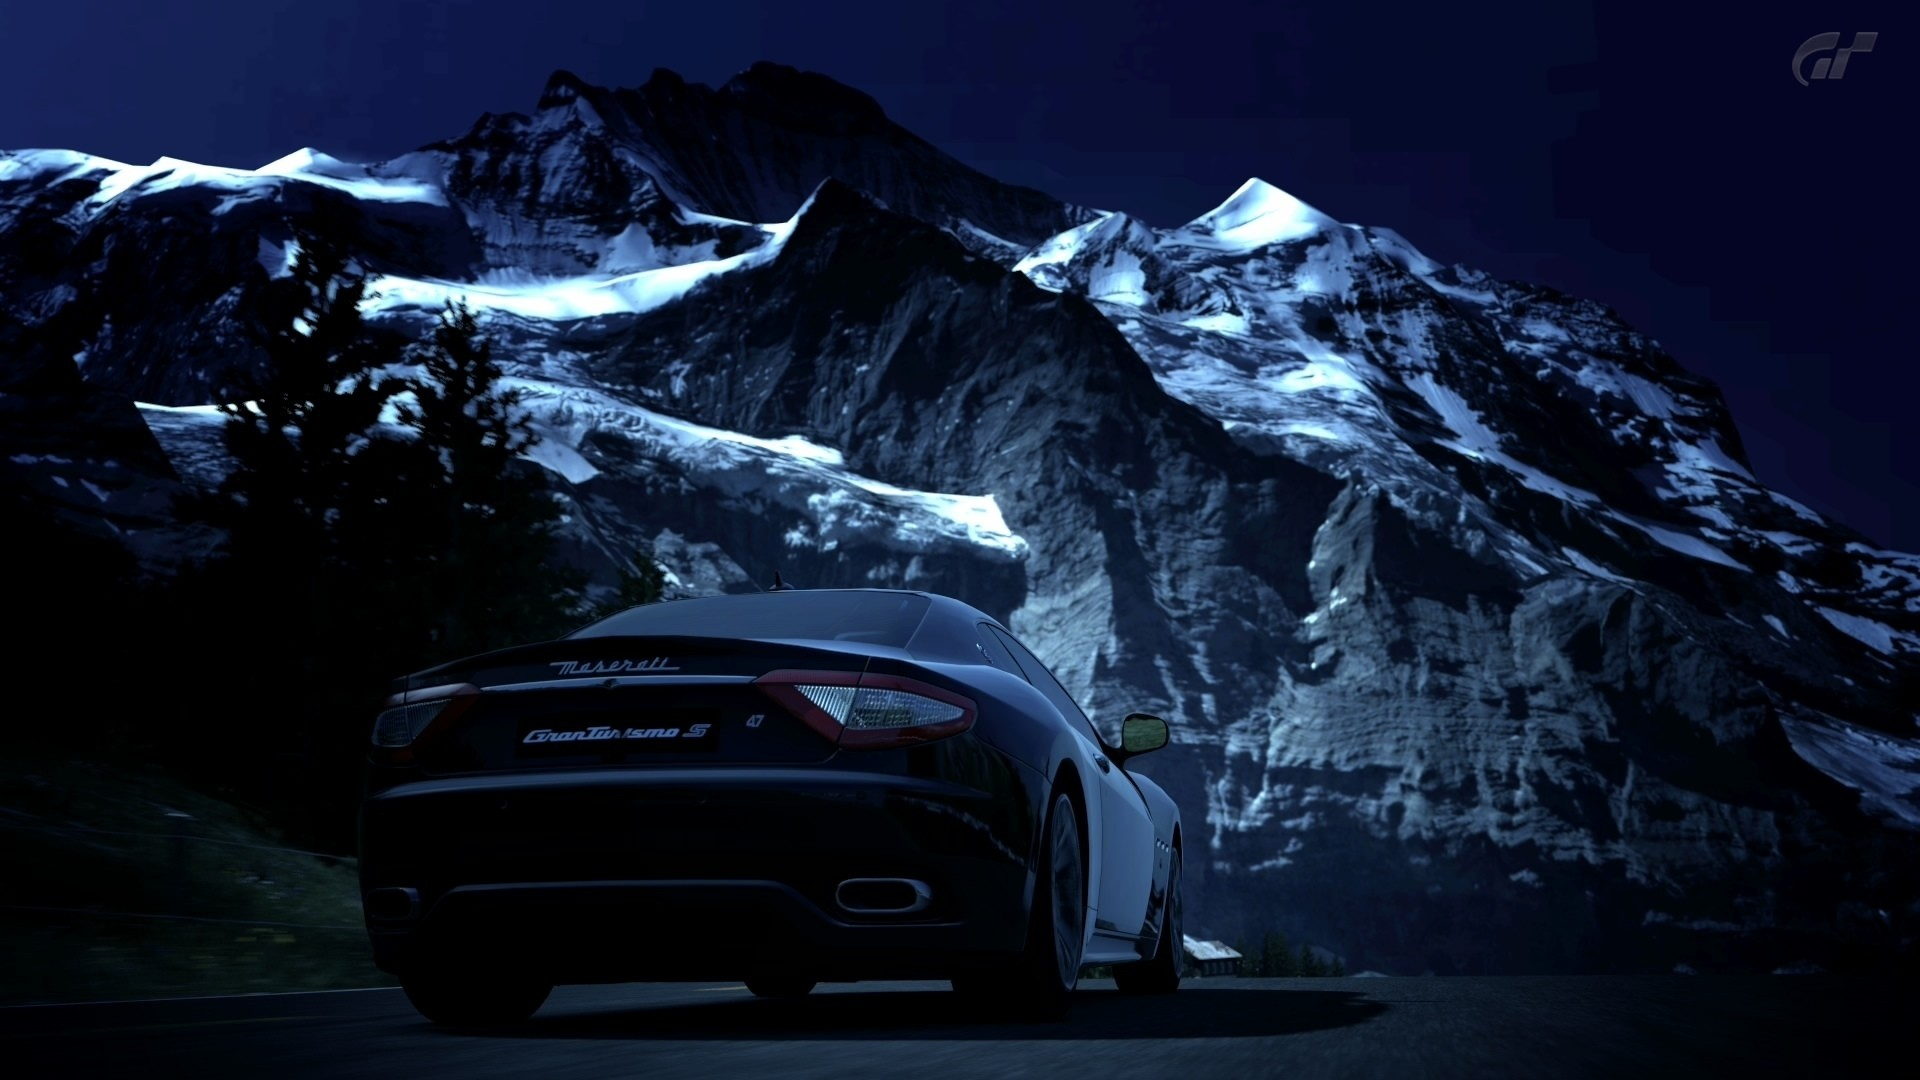 Maserati HD Wallpapers  Backgrounds  Wallpaper Page  1920x1080